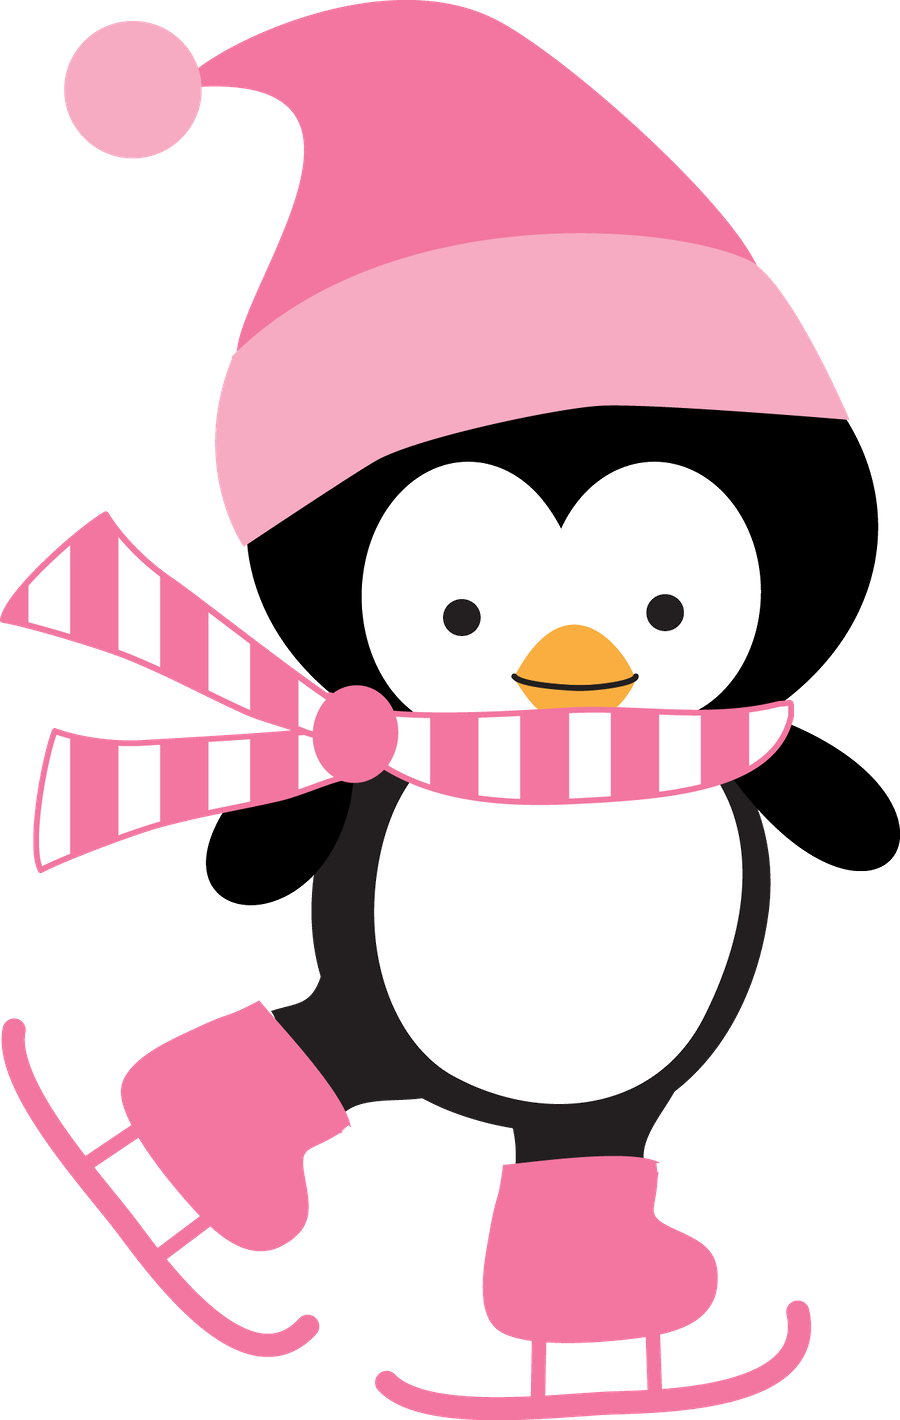 Clipart sleeping winter. Minus say hello pinguins